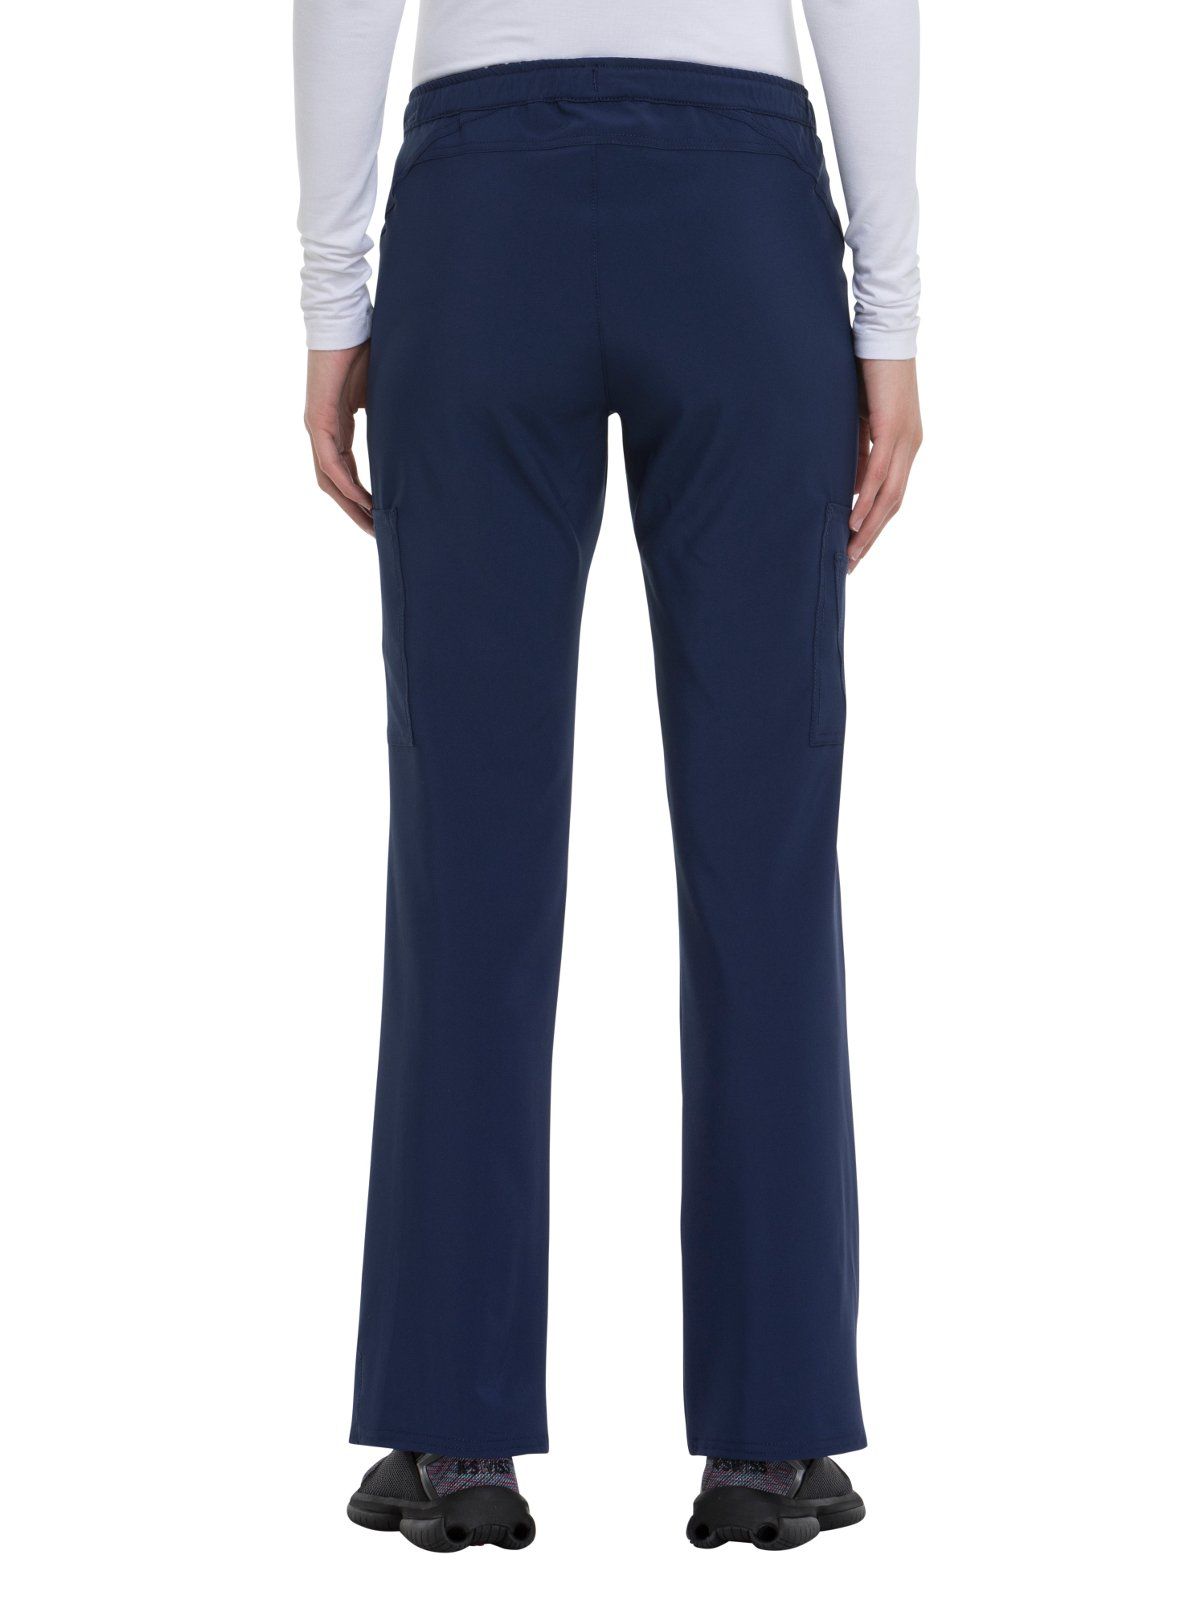 HeartSoul Love Always by Women's Charmed Low Rise Drawstring Cargo Scrub Pant Small Petite Navy by HeartSoul (Image #2)